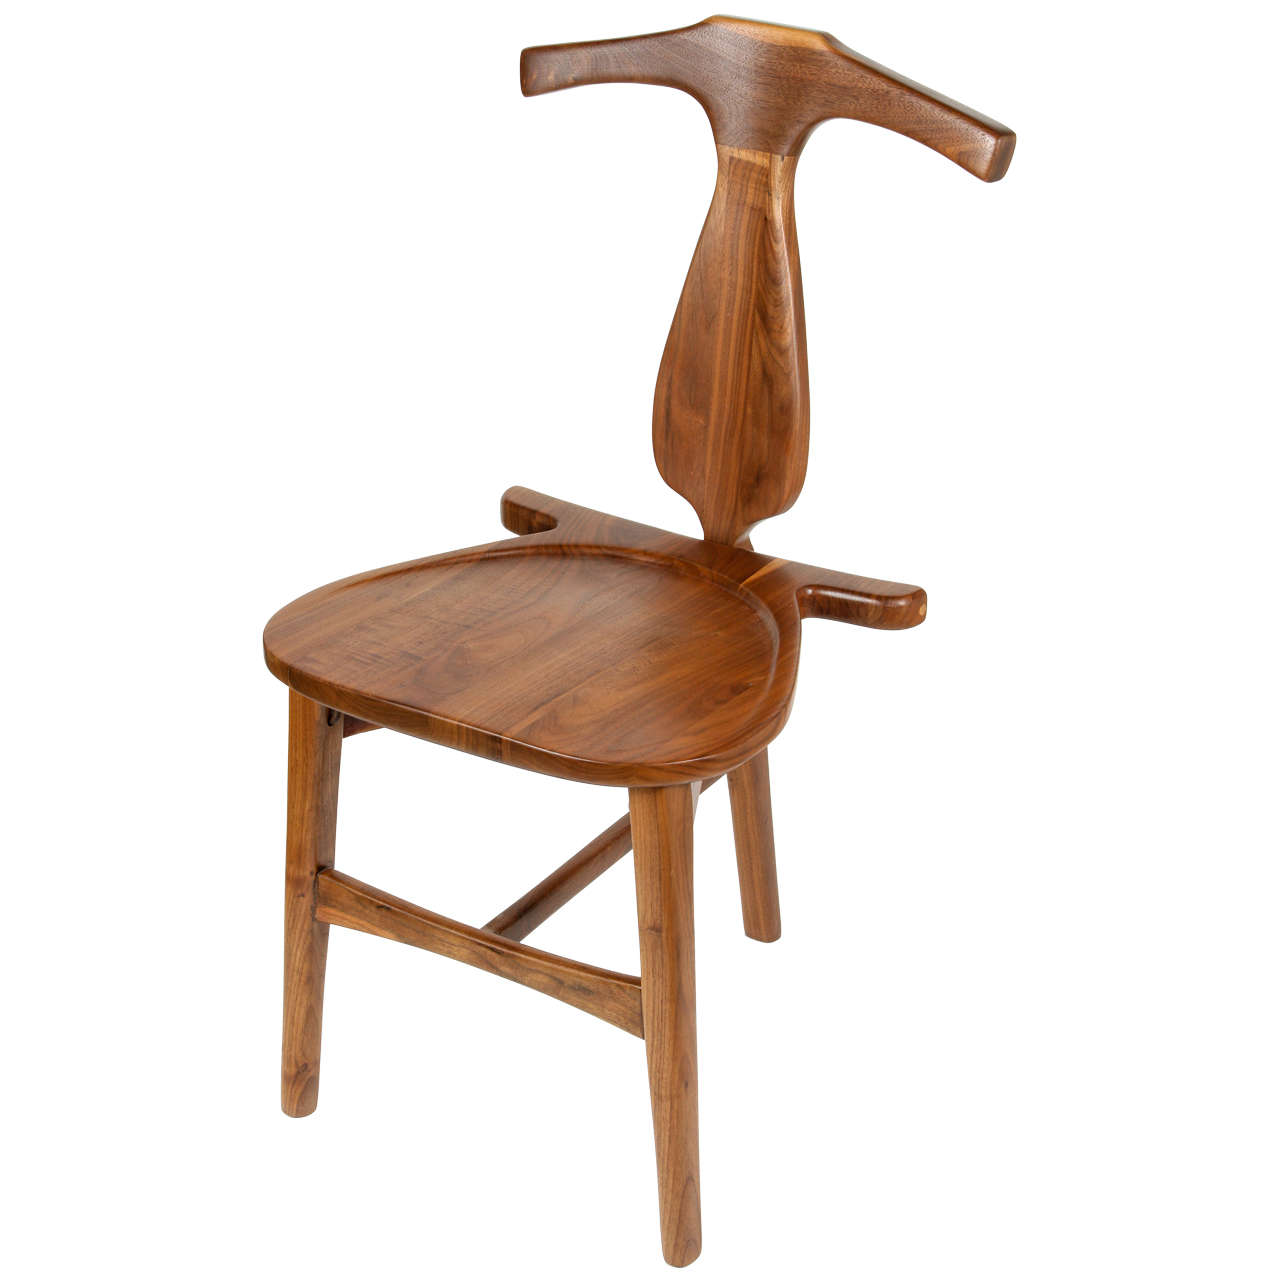 Wenger Chairs Valet Chair In The Manner Of Hans Wenger At 1stdibs